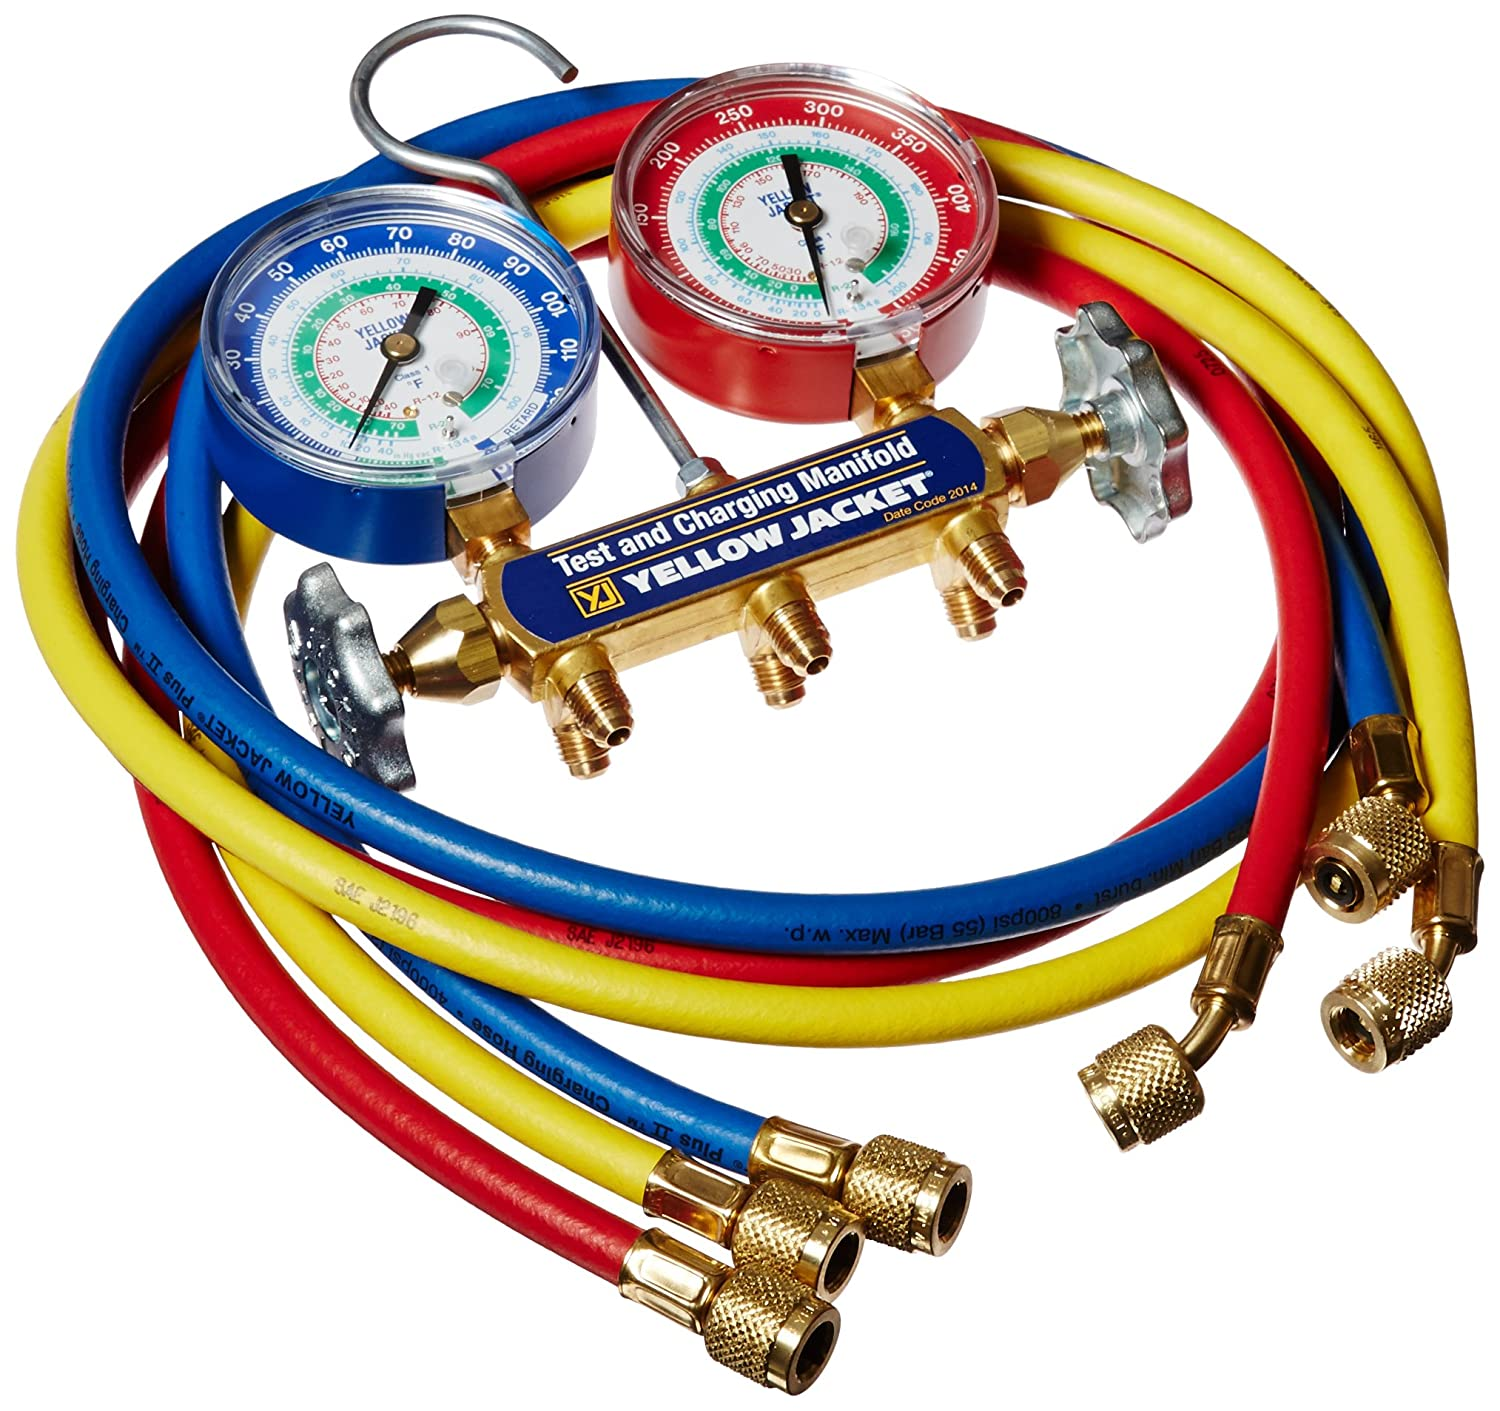 Yellow Jacket 42007 Series 41 Manifold With 3 1 8 Gauge House Wiring Standard 60 Plus Ii Fittings Psi R 12 22 134a Industrial Scientific